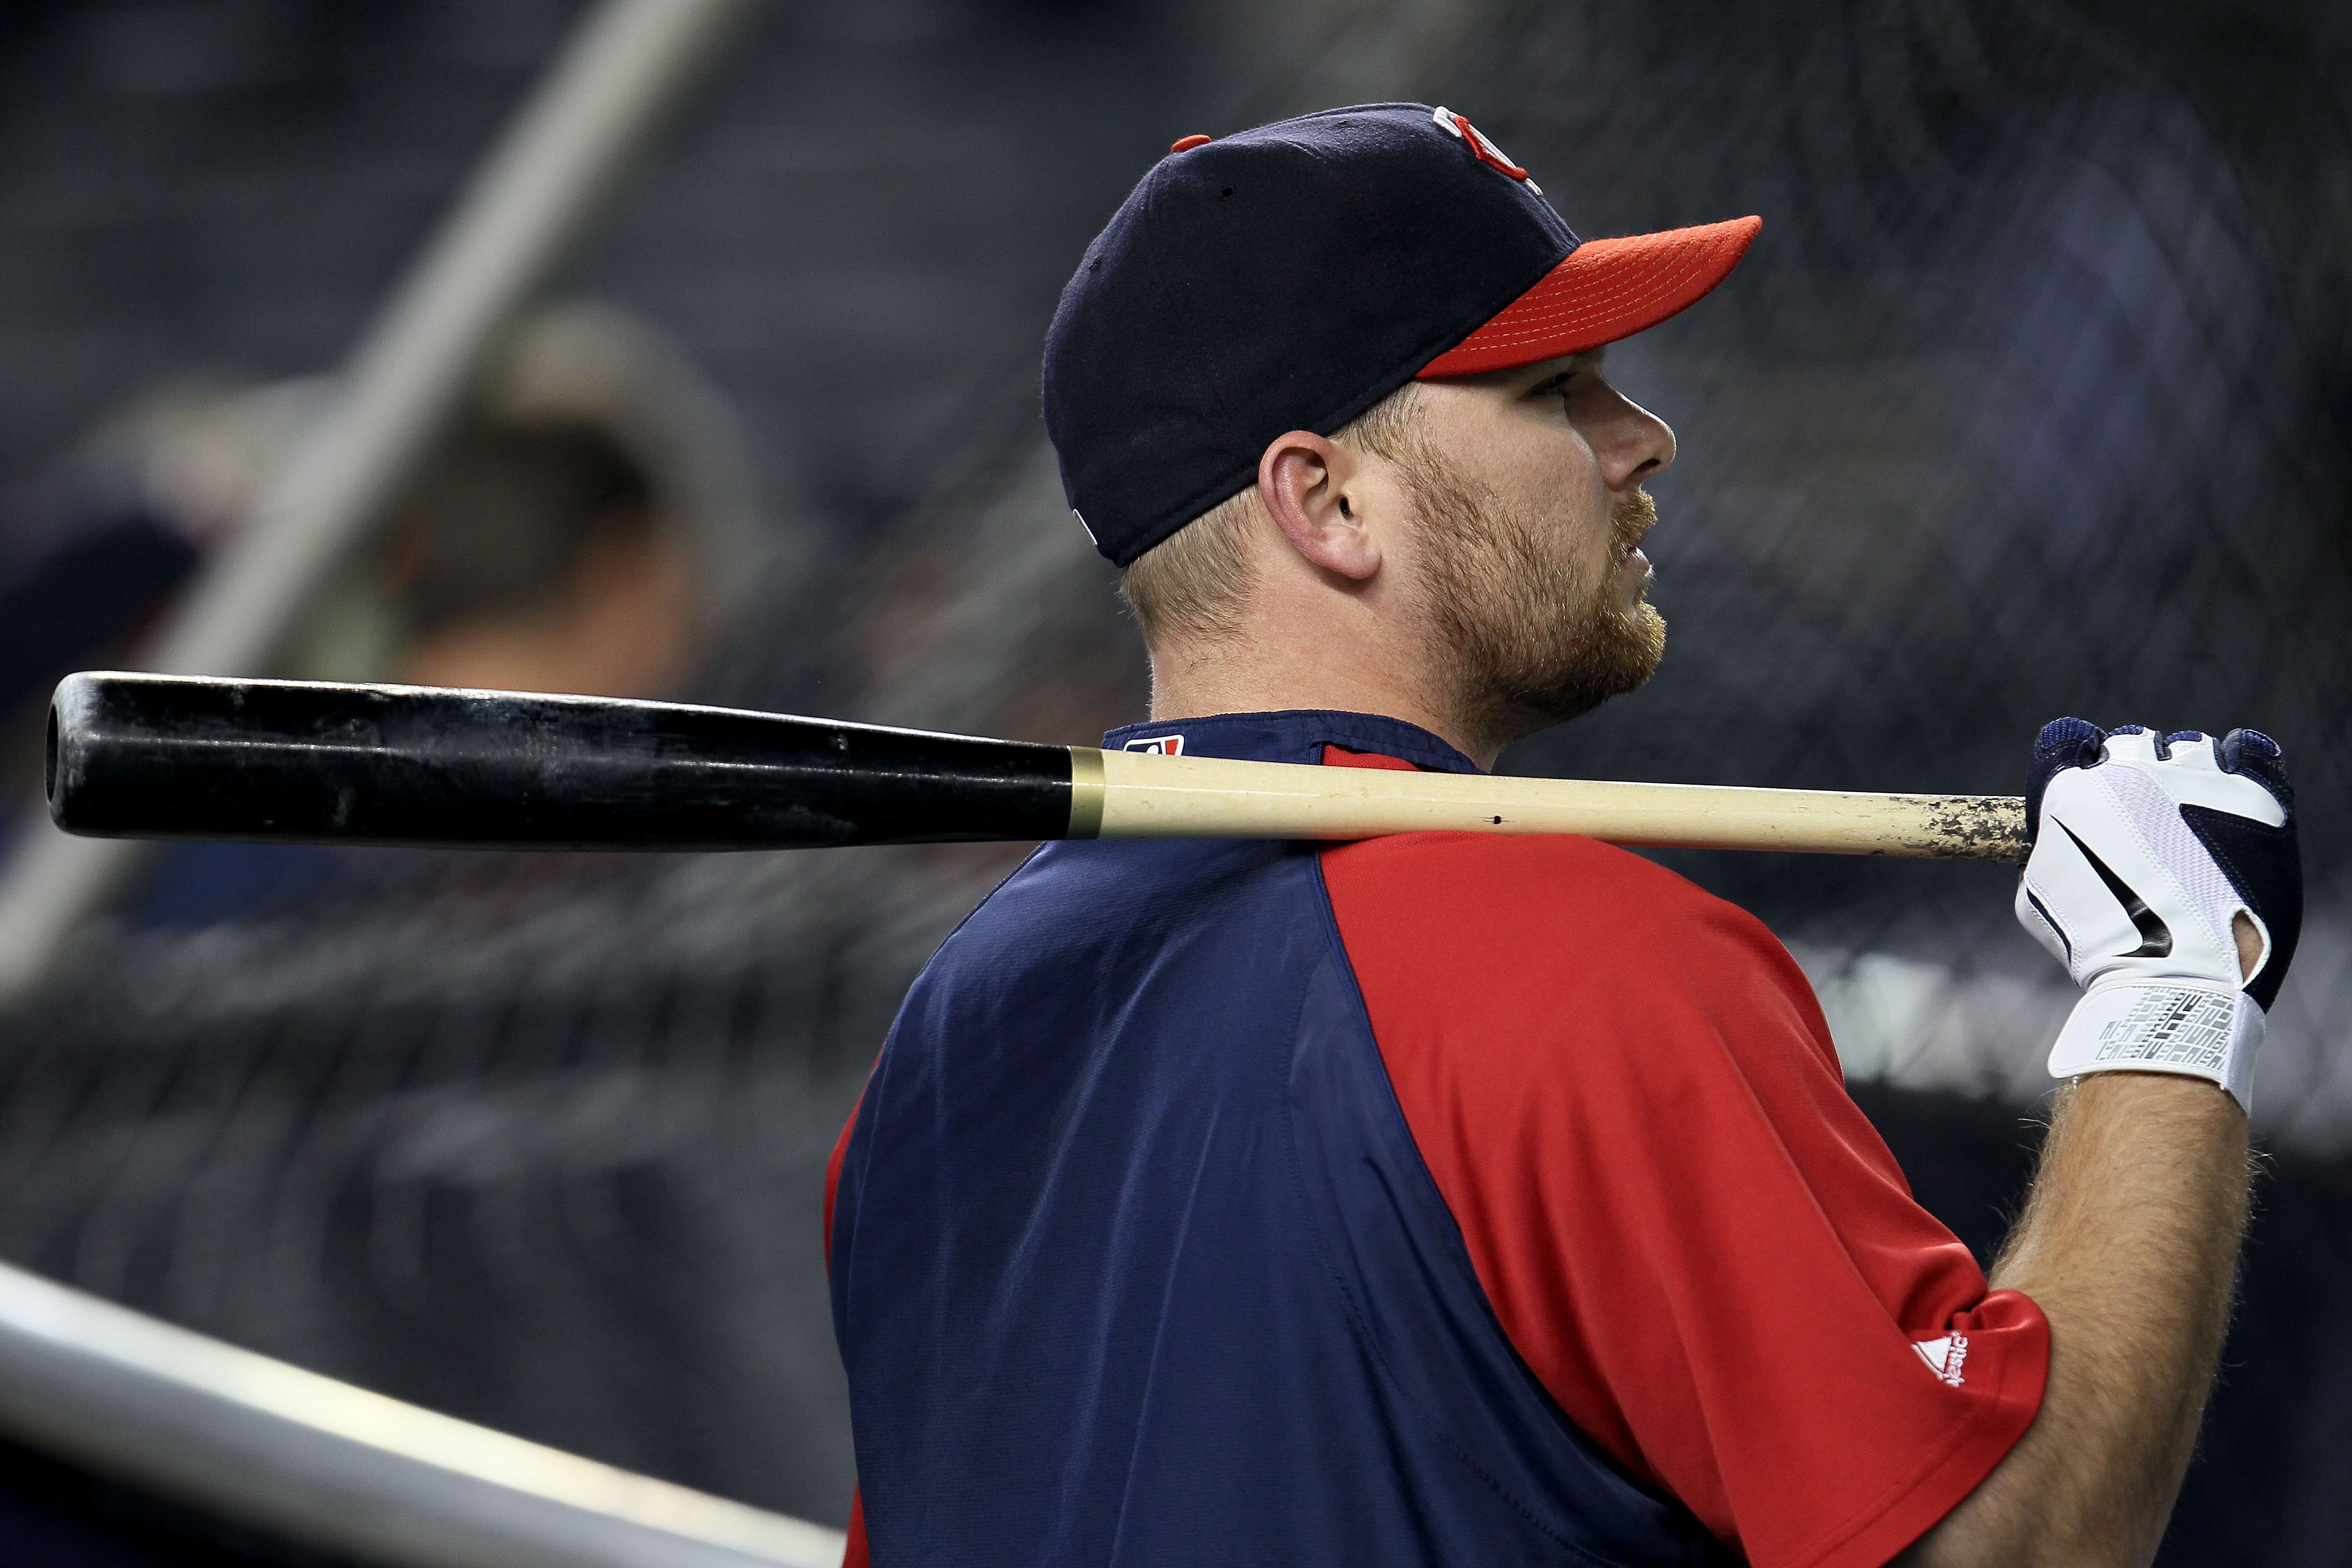 NEW YORK - OCTOBER 09:  Jason Kubel #16 of the Minnesota Twins looks on during batting practice against the New York Yankees during Game Three of the ALDS part of the 2010 MLB Playoffs at Yankee Stadium on October 9, 2010 in the Bronx borough of New York